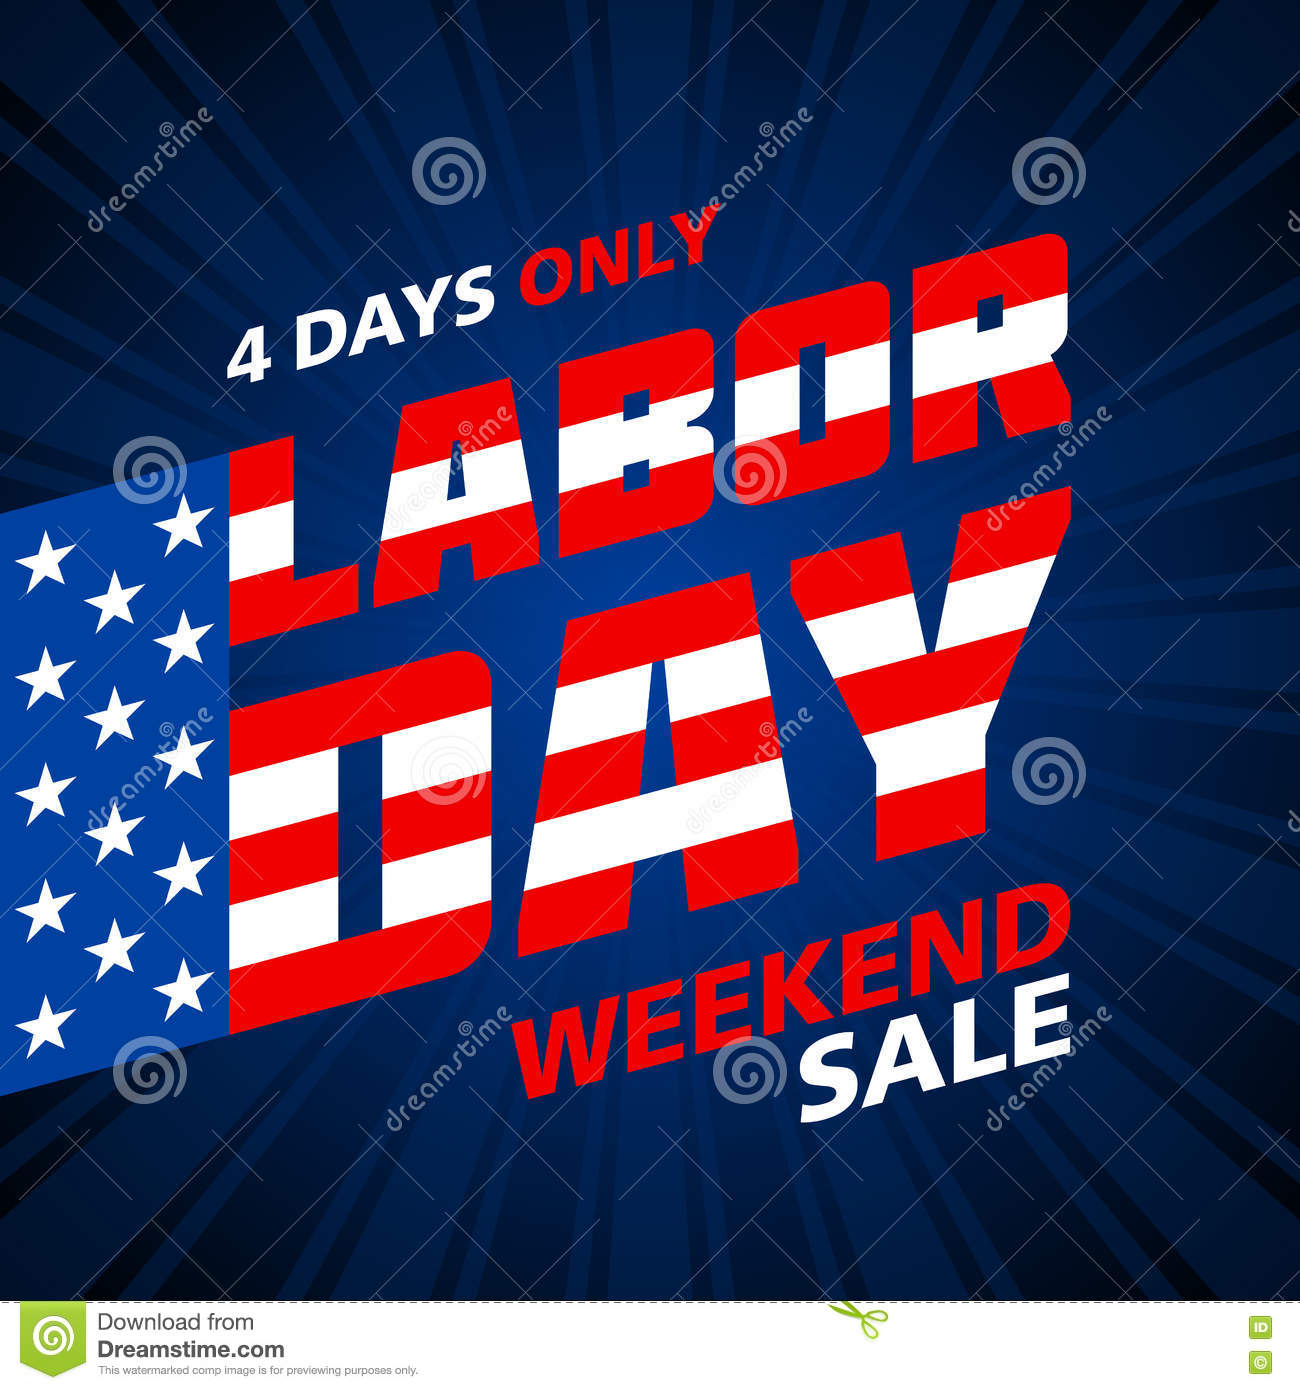 Weekend Sale Banner: Labor Day Weekend Sale Stock Vector. Illustration Of